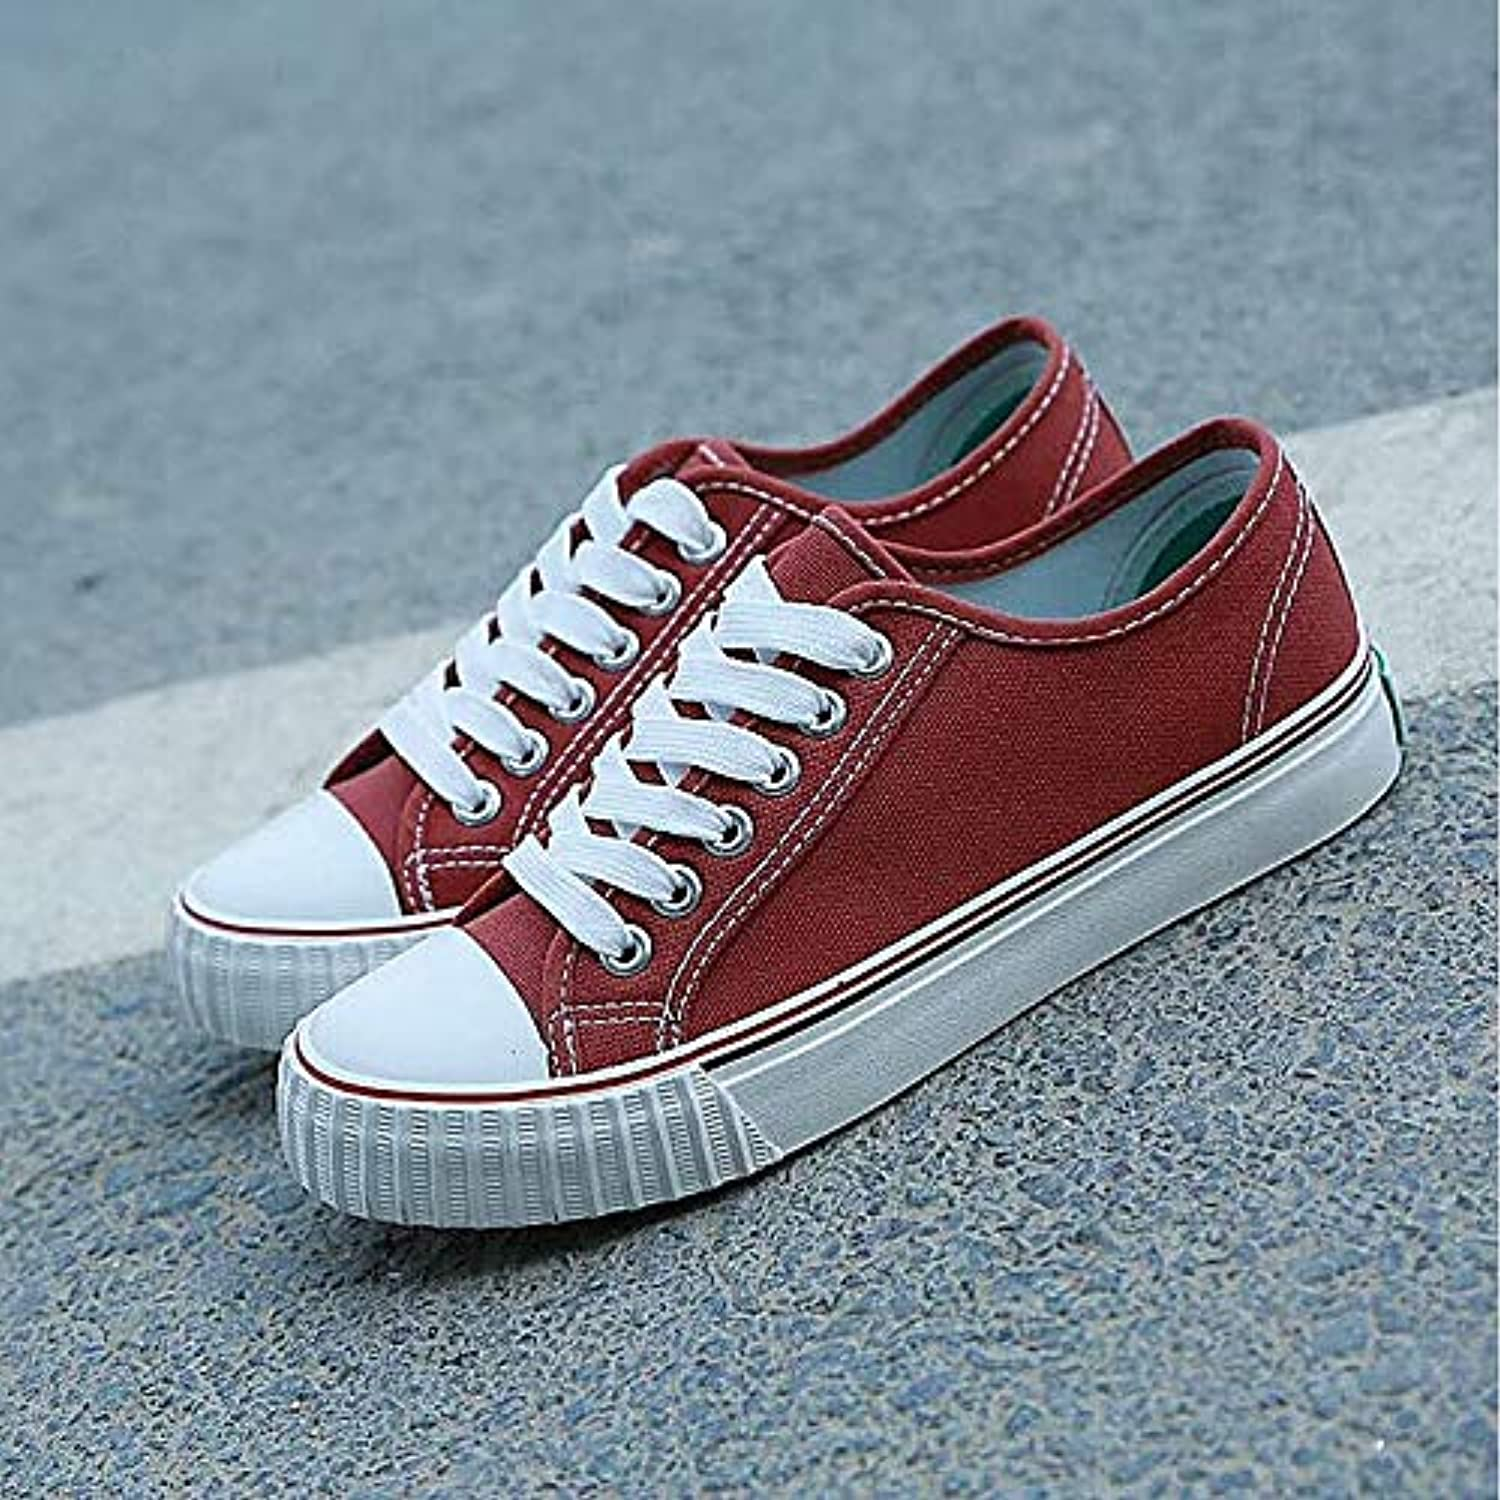 Women's shoes Canvas Fall Comfort Sneakers Flat Heel Red Green   Pink